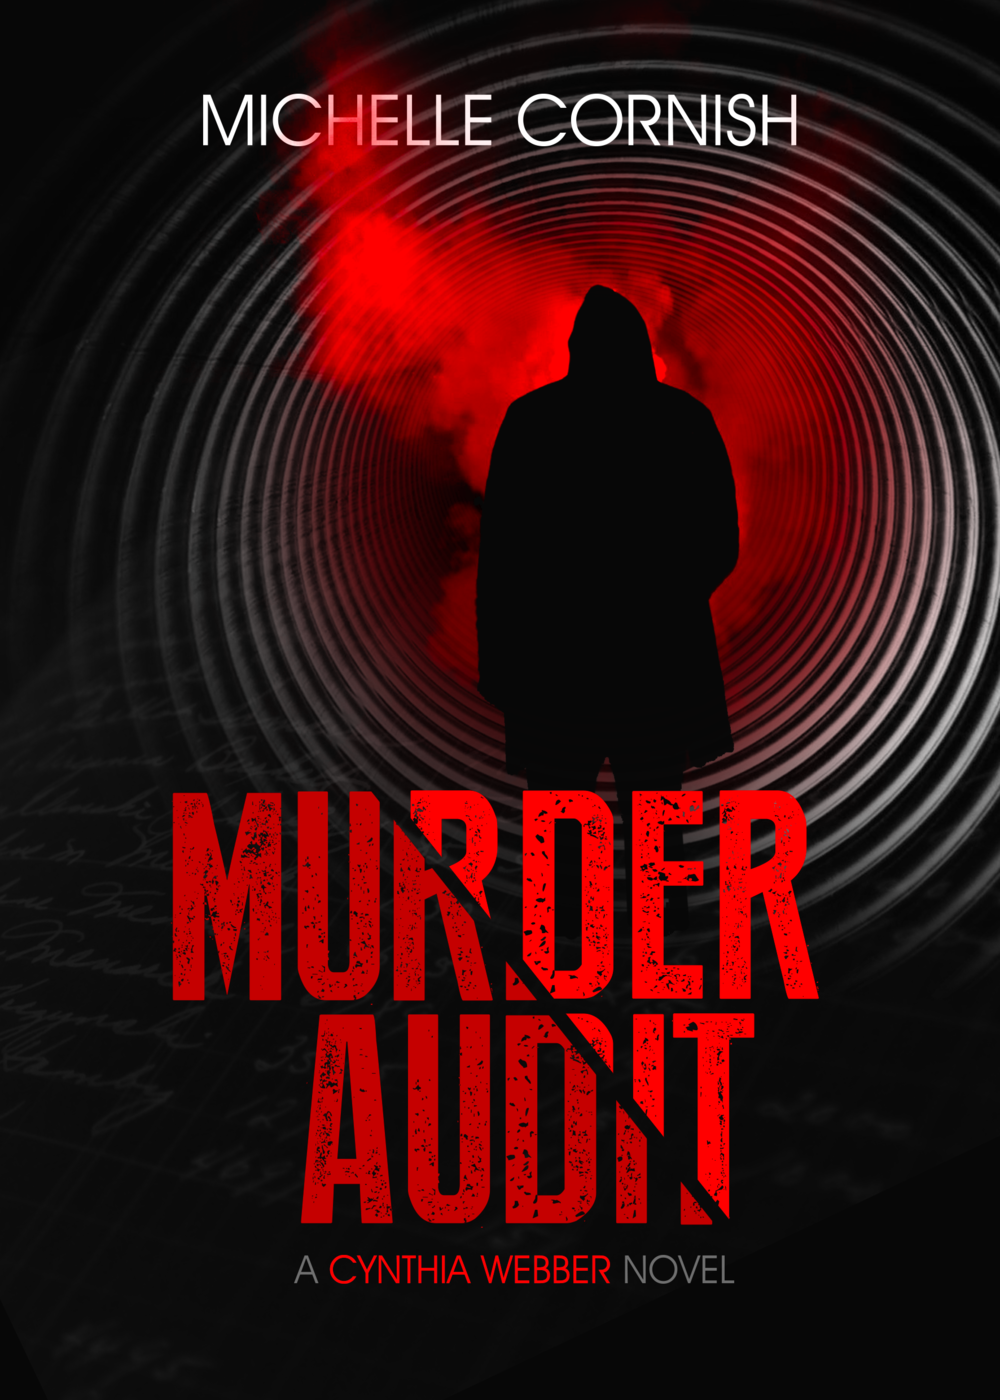 The debut financial crime thriller, Murder Audit, by Michelle Cornish is now available on Amazon!